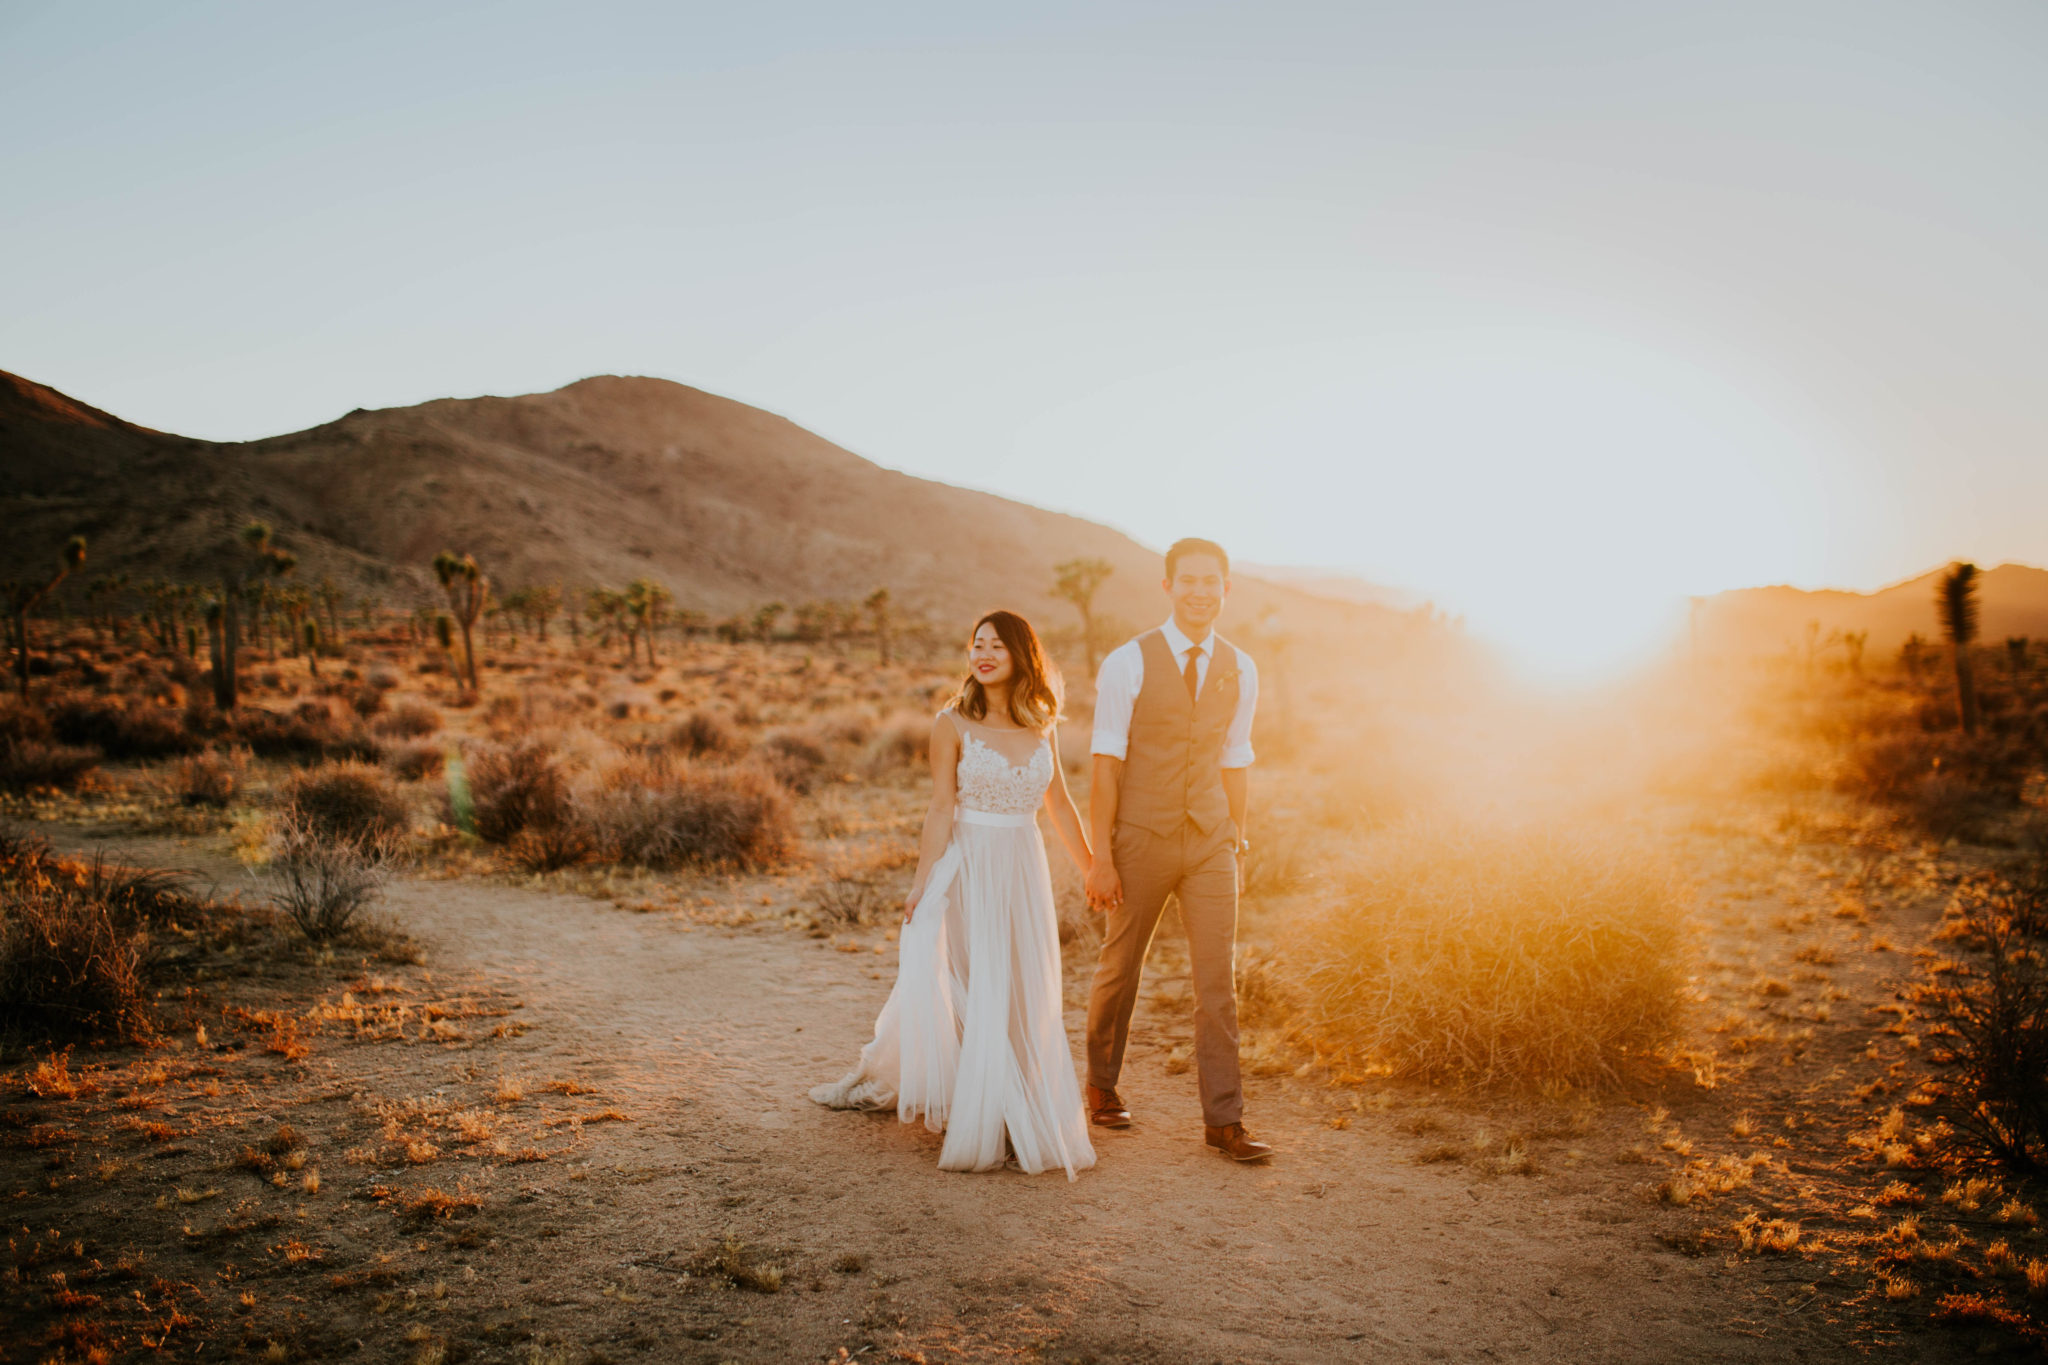 Mandy & Joey Joshua Tree Elopement California Wedding Photographer-254